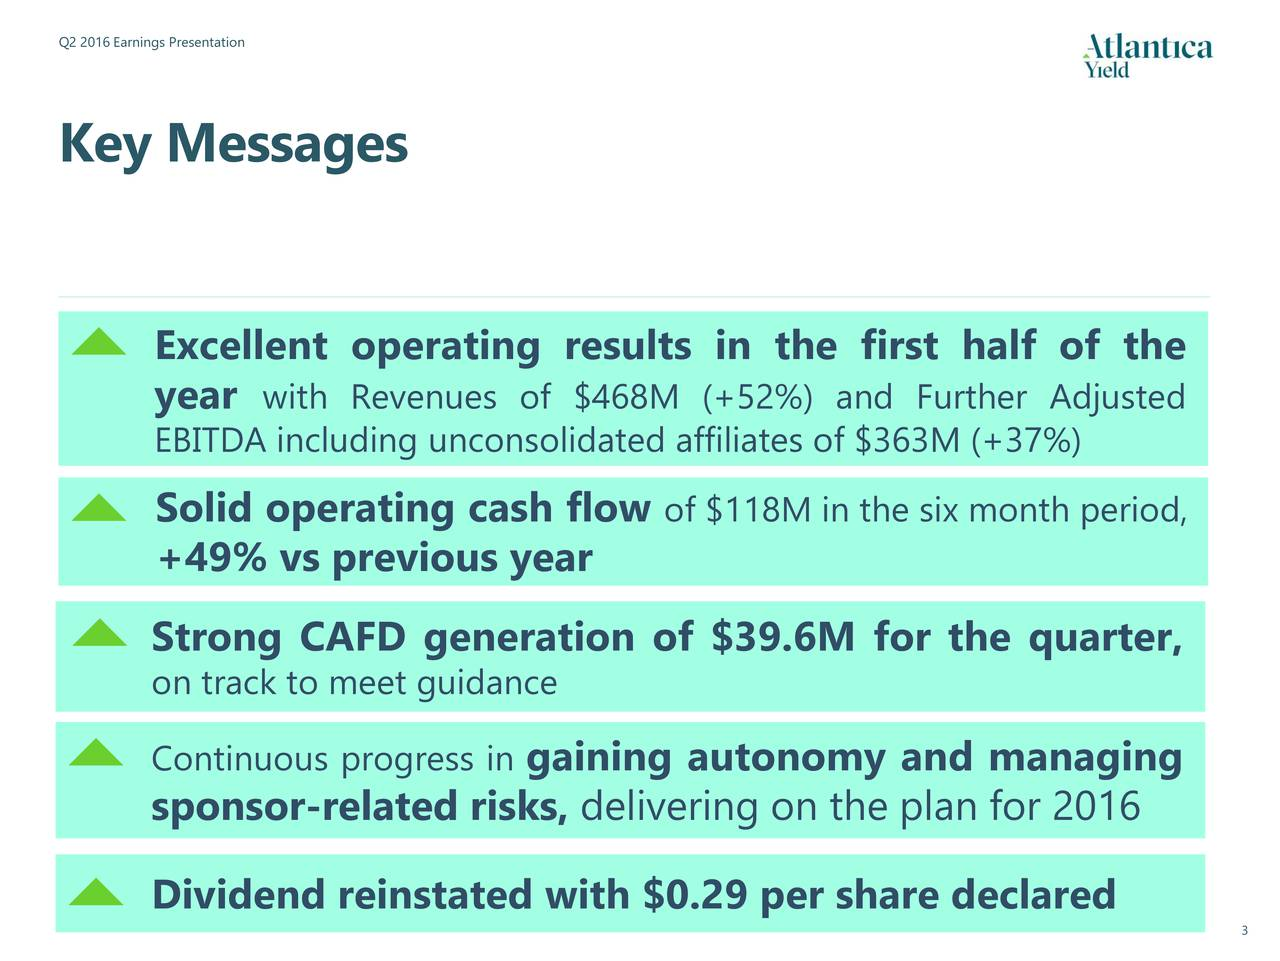 Key Messages Excellent operating results in the first half of the year with Revenues of $468M (+52%) and Further Adjusted EBITDA including unconsolidated affiliates of $363M (+37%) Solid operating cash flow of $118M in the six month period, +49% vs previous year Strong CAFD generation of $39.6M for the quarter, on track to meet guidance Continuous progress ingaining autonomy and managing sponsor-related risks, delivering on the plan for 2016 Dividend reinstated with $0.29 per share declared 3